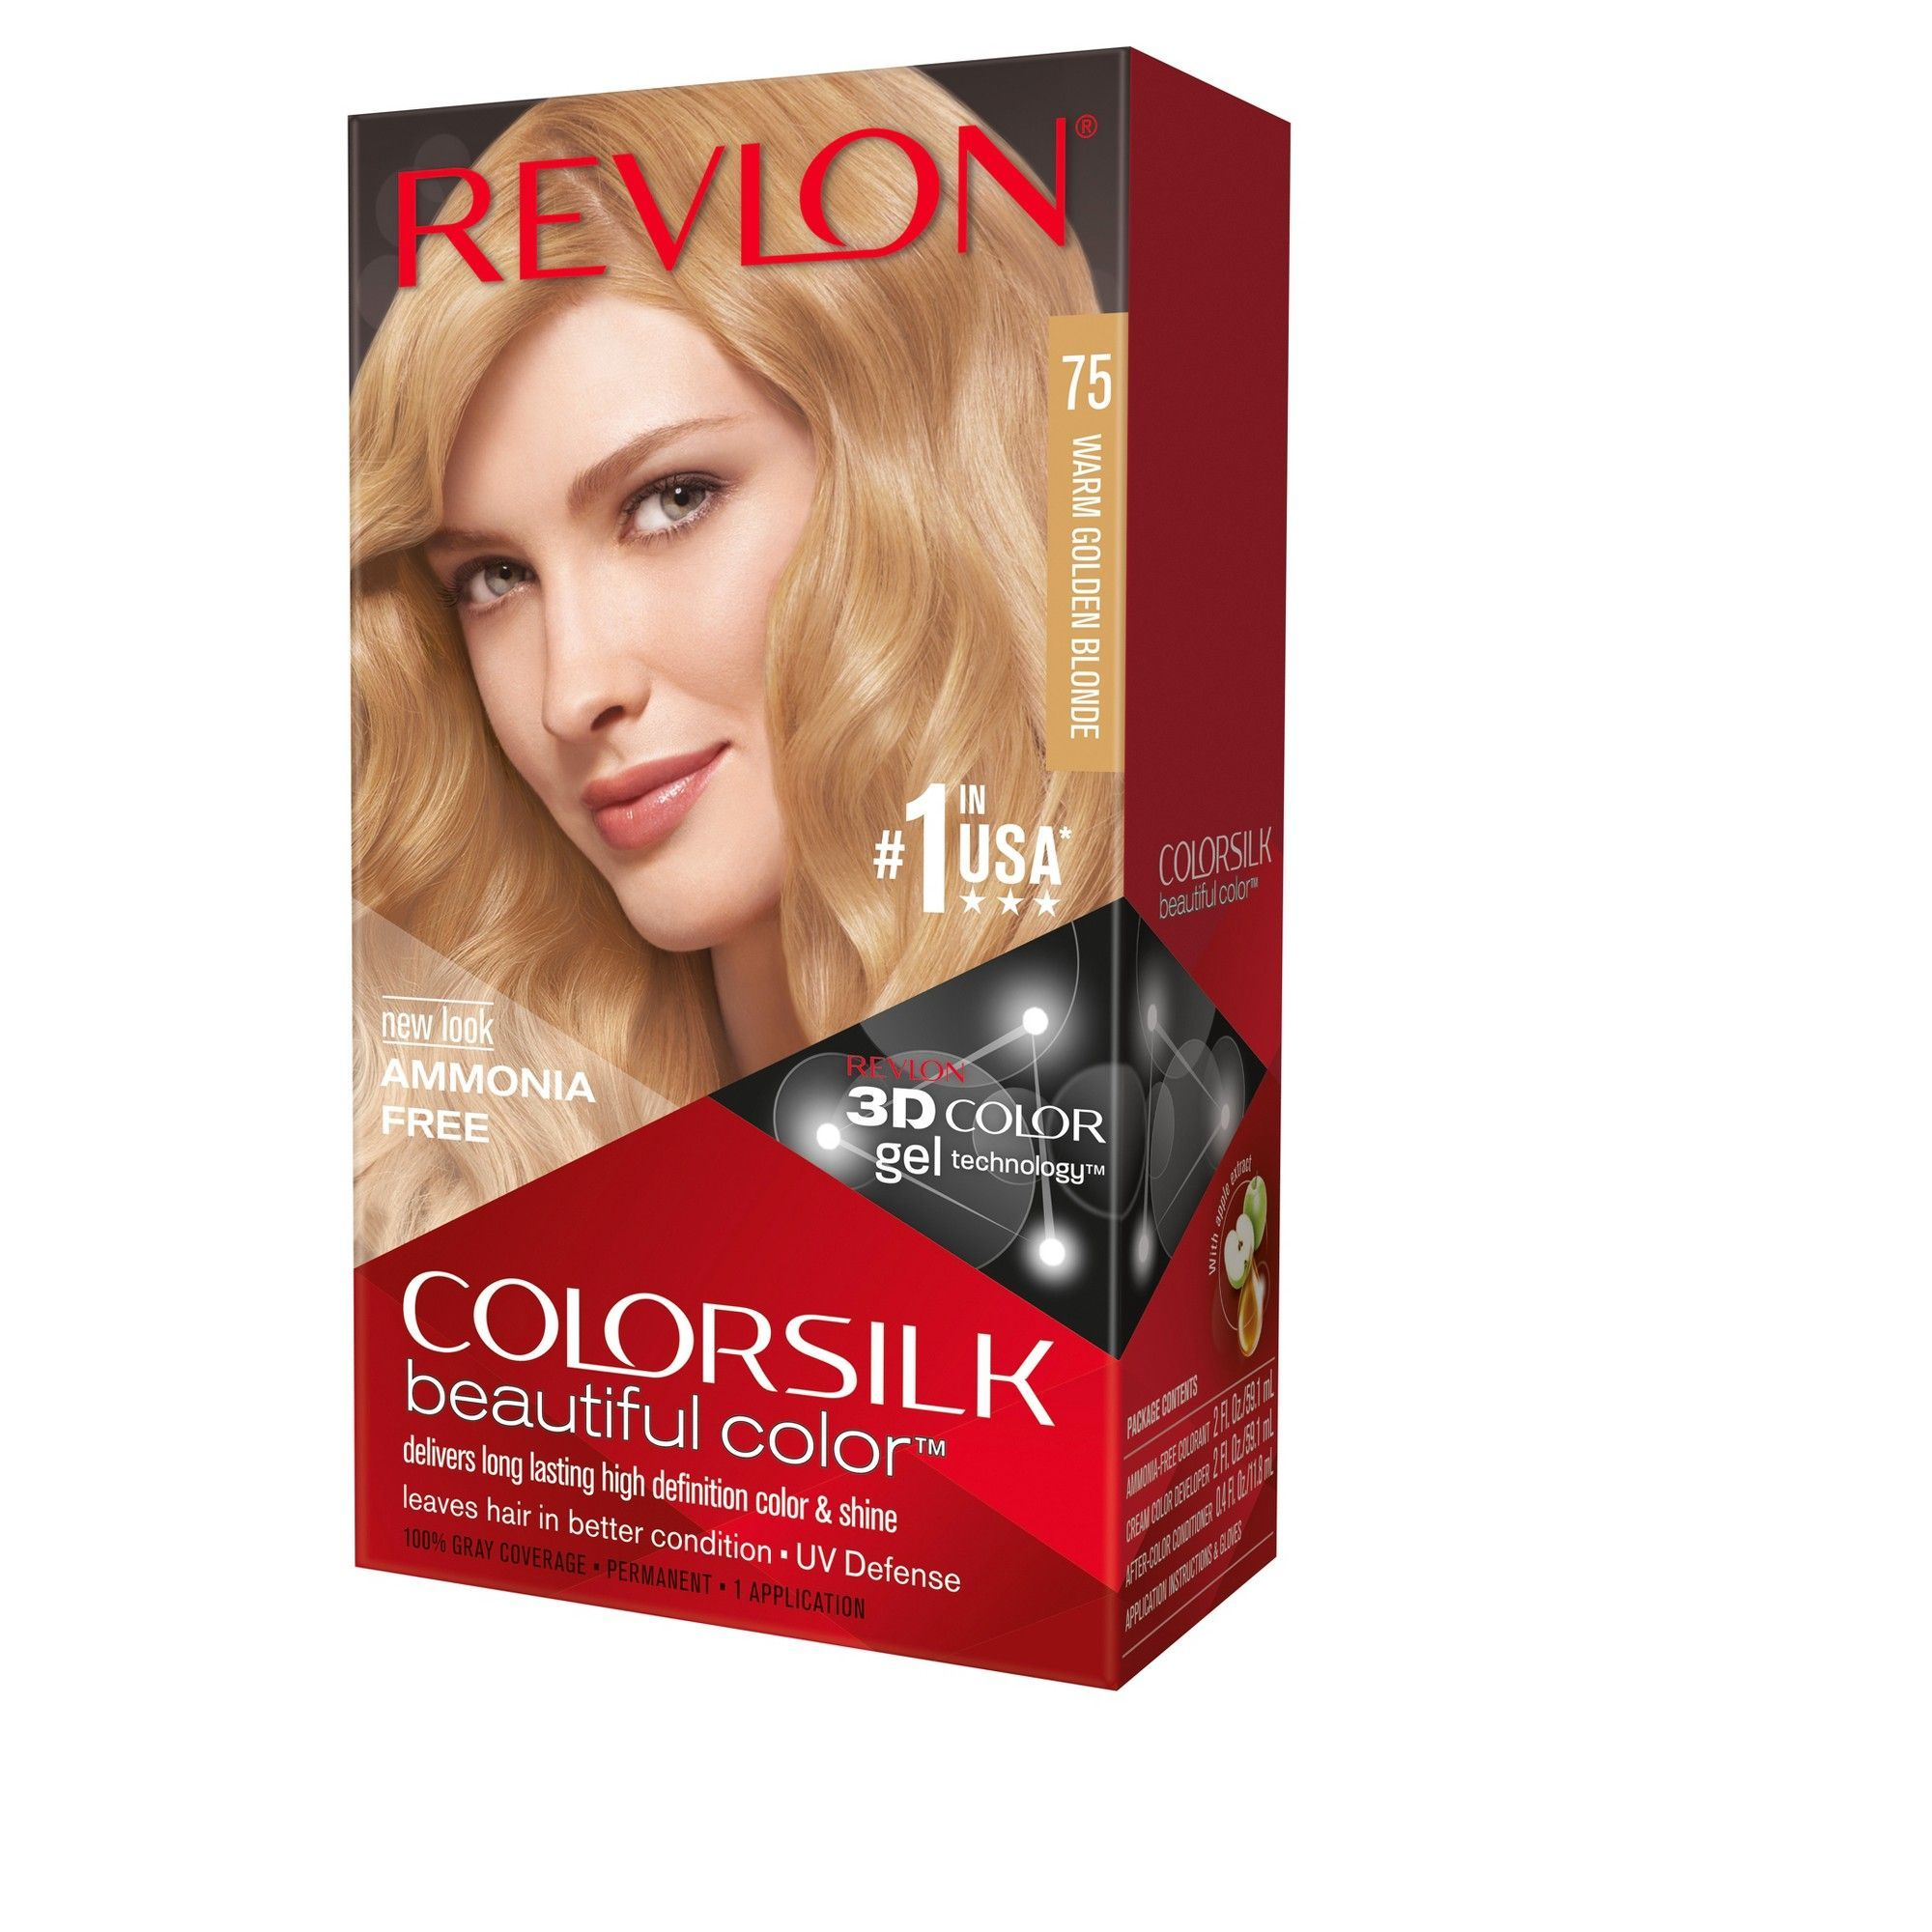 Revlon Colorsilk Beautiful Color 75 Warm Golden Blonde Revlon Hair Dye Hair Dye Color Chart Hair Color Shades